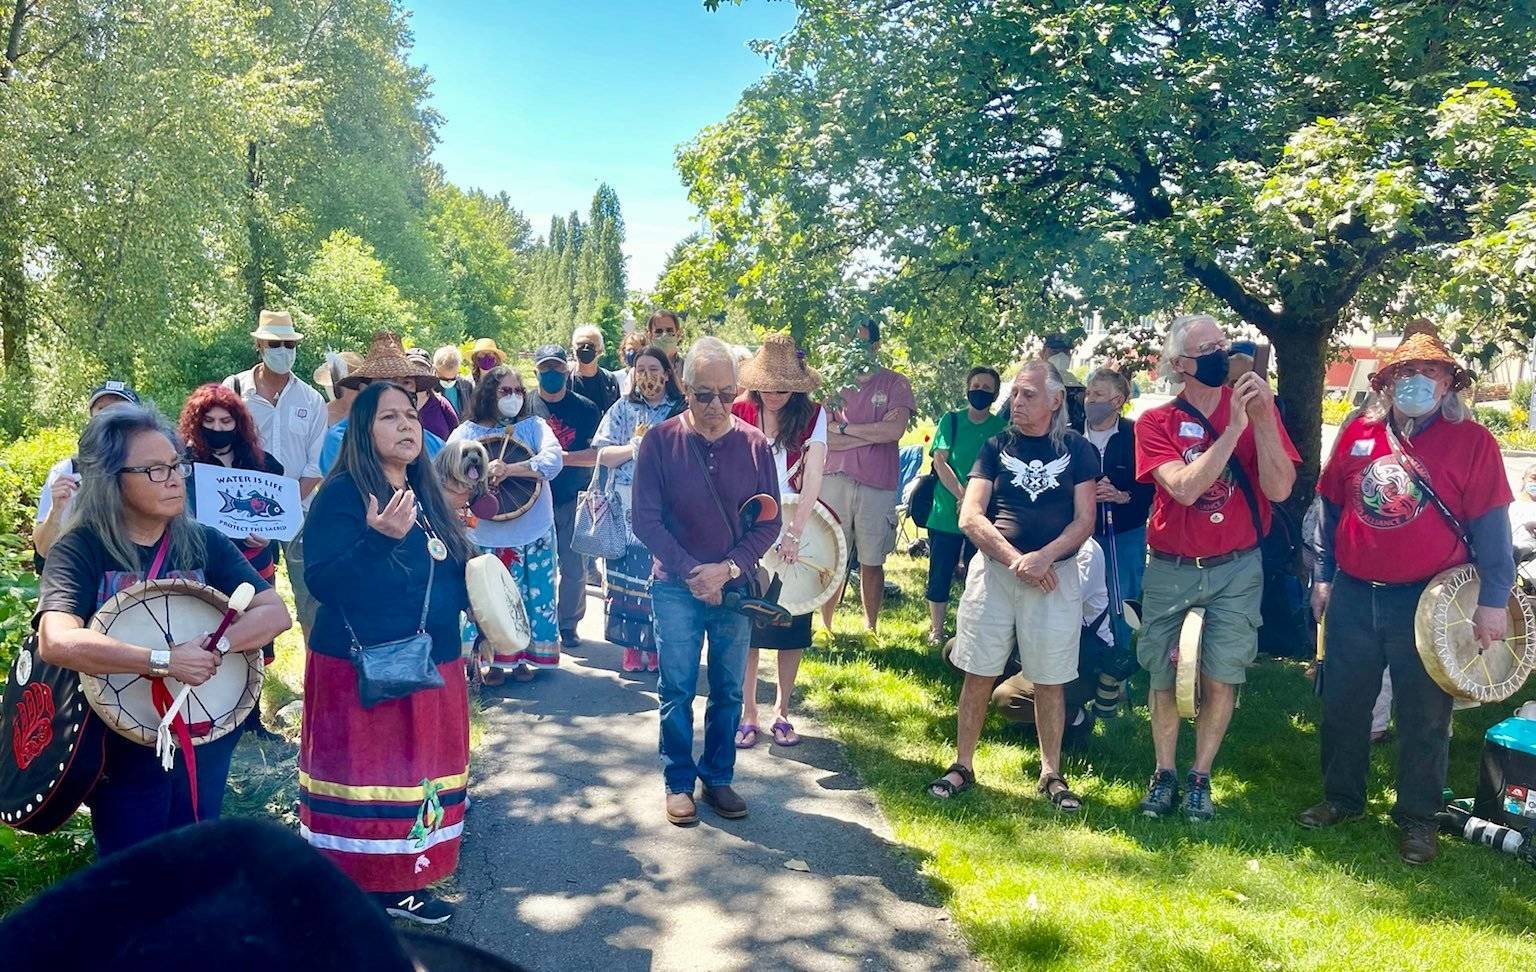 Indigenous leaders and elders held a ceremony to pray for the safety of the salmon, ecosystems and cultural heritage affected by Trans Mountain's plans to drill under the Fraser River on May 29, 2021. (Contributed)